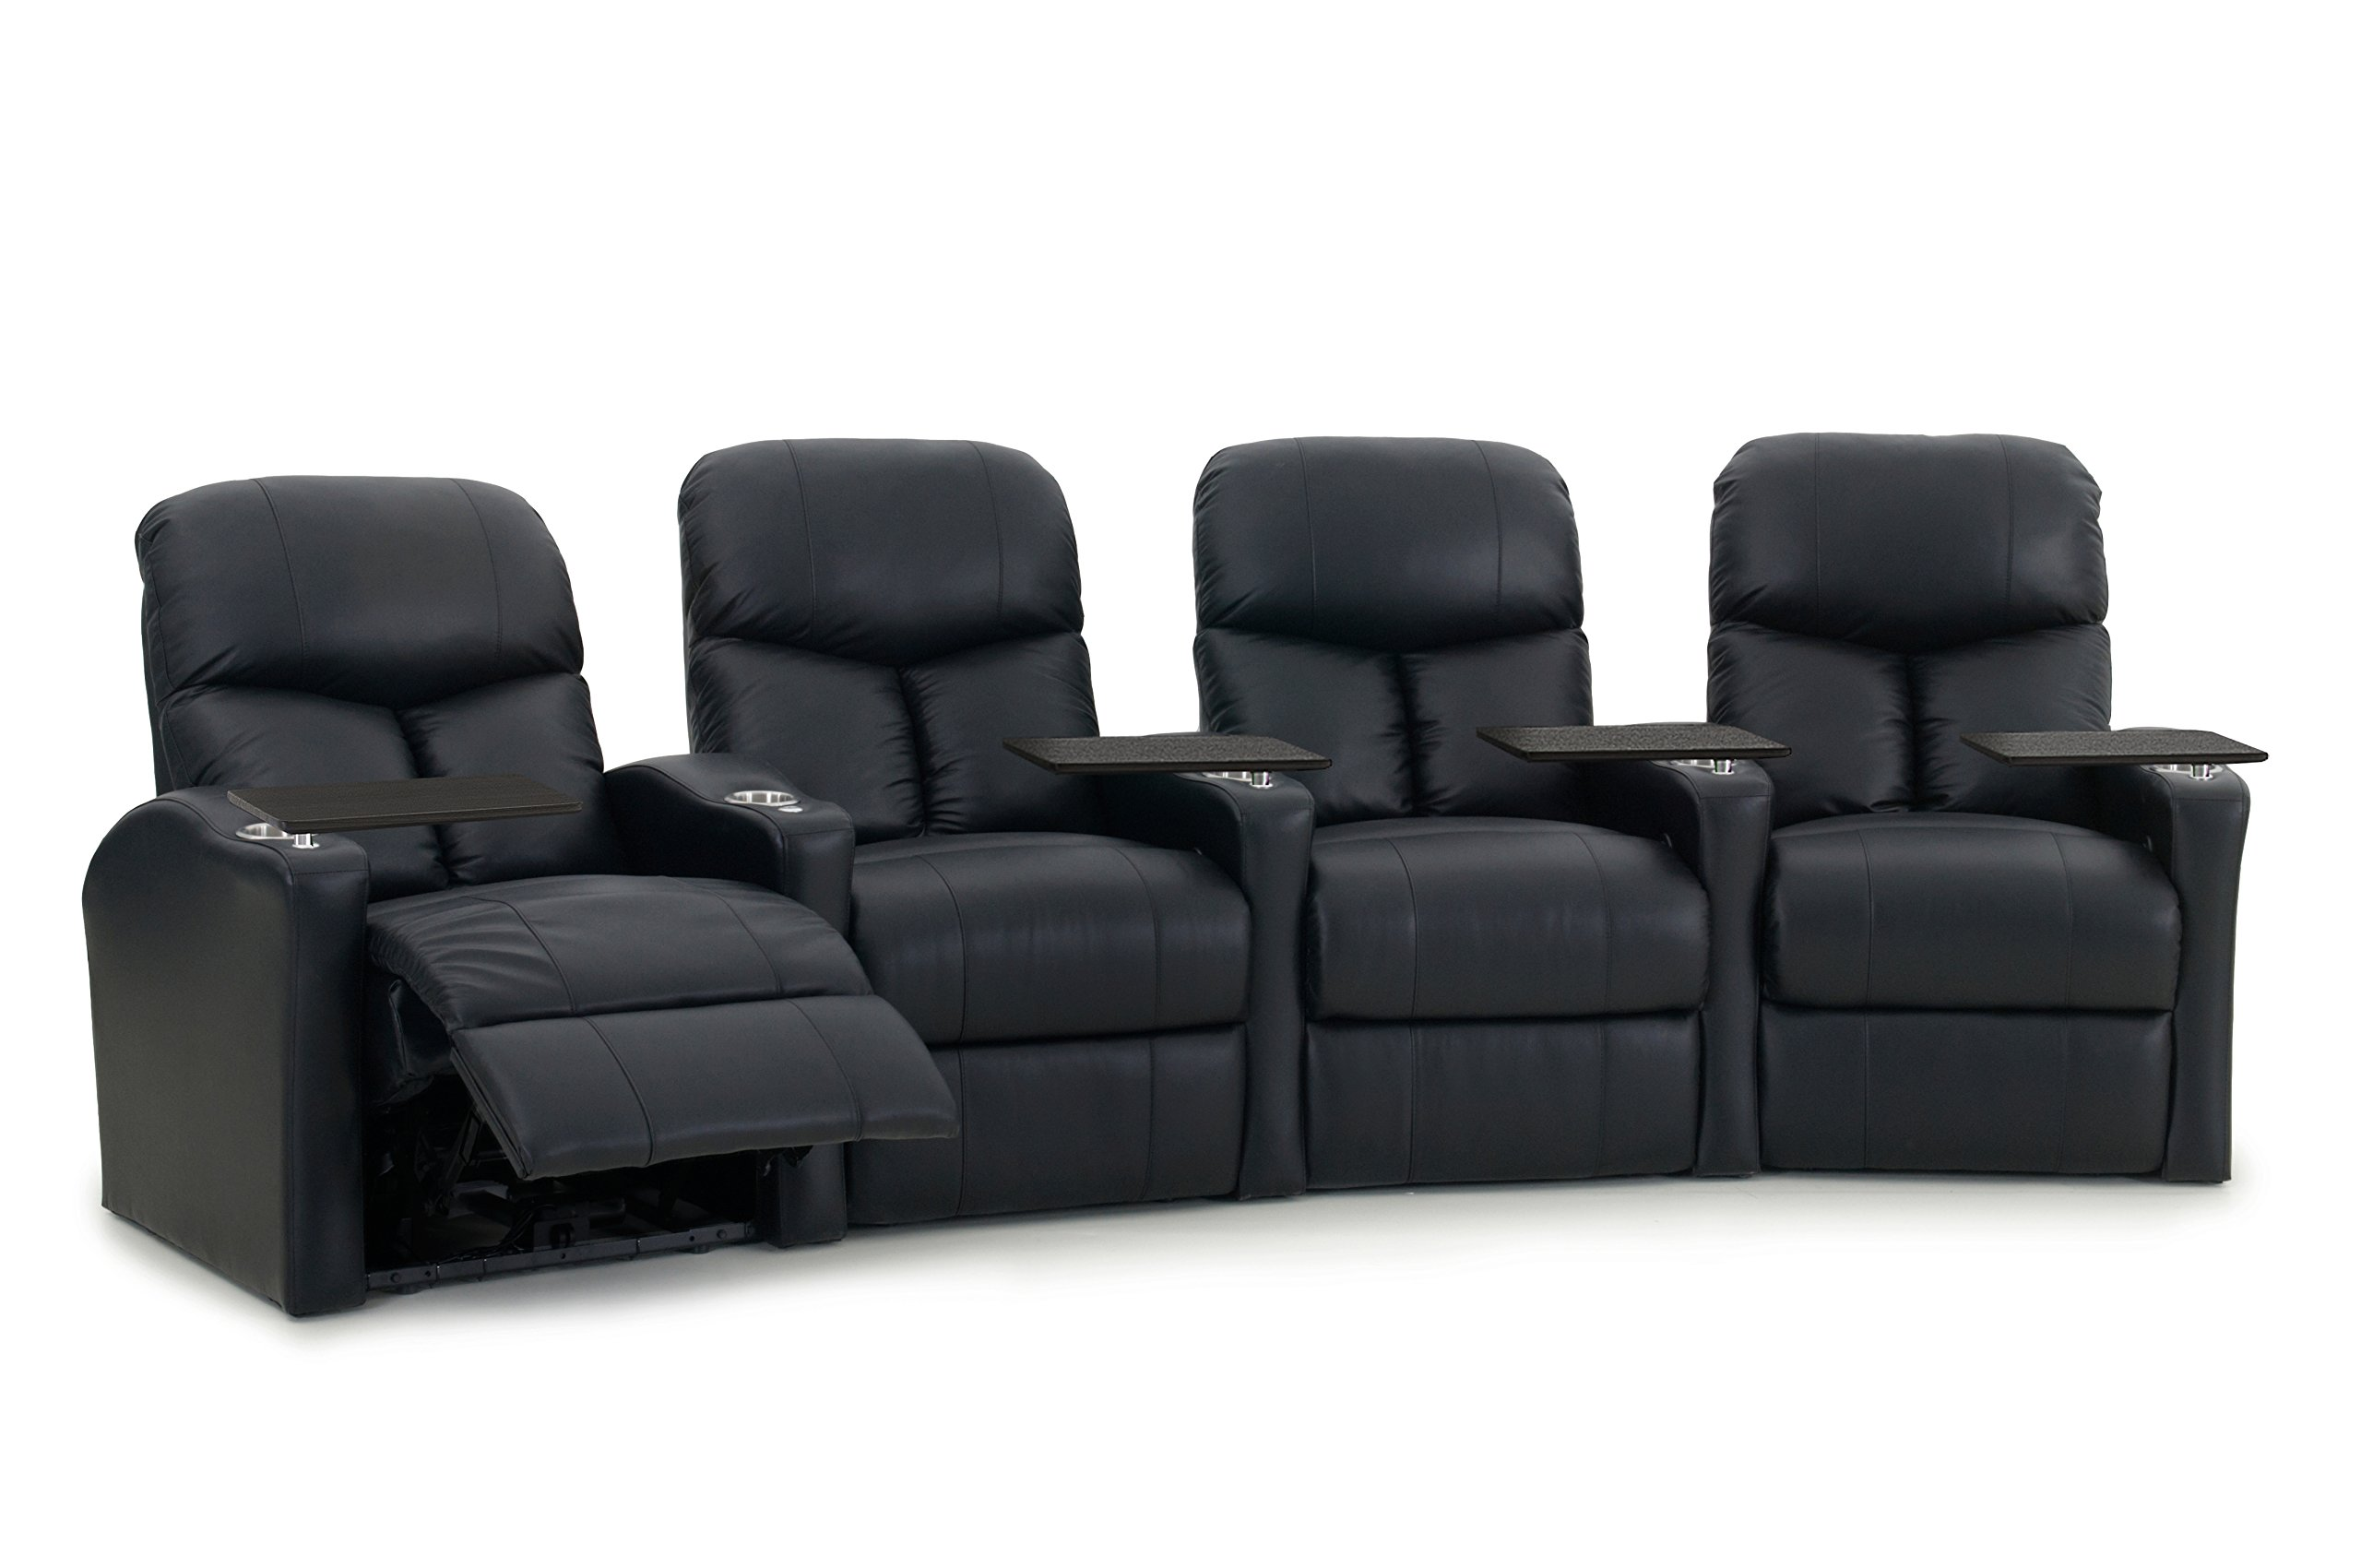 Octane Seating BOLT-R4CP-BND-BL Octane Bolt XS400 Motorized Leather Home Theater Recliner Set (Row of 4)